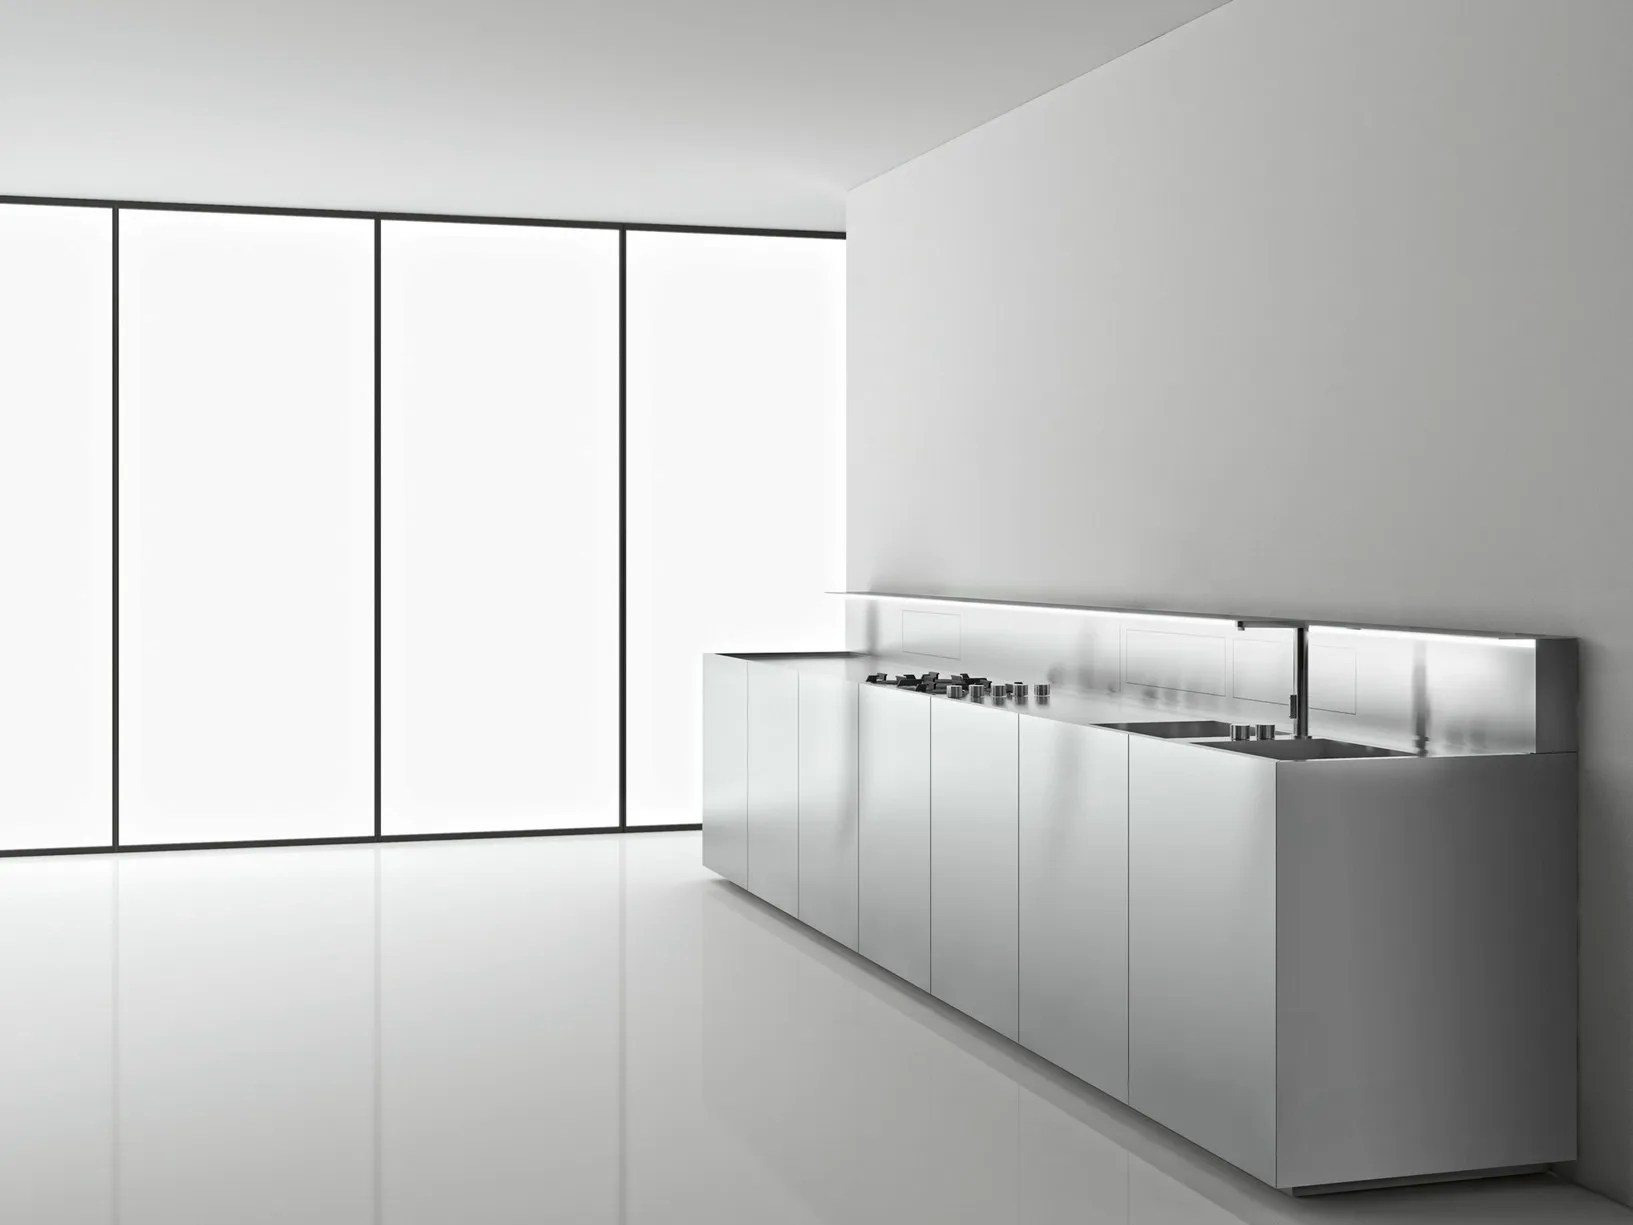 Boffi Köln Boffi Köln Presents The Latest Kitchen Bathroom And Wardrobe